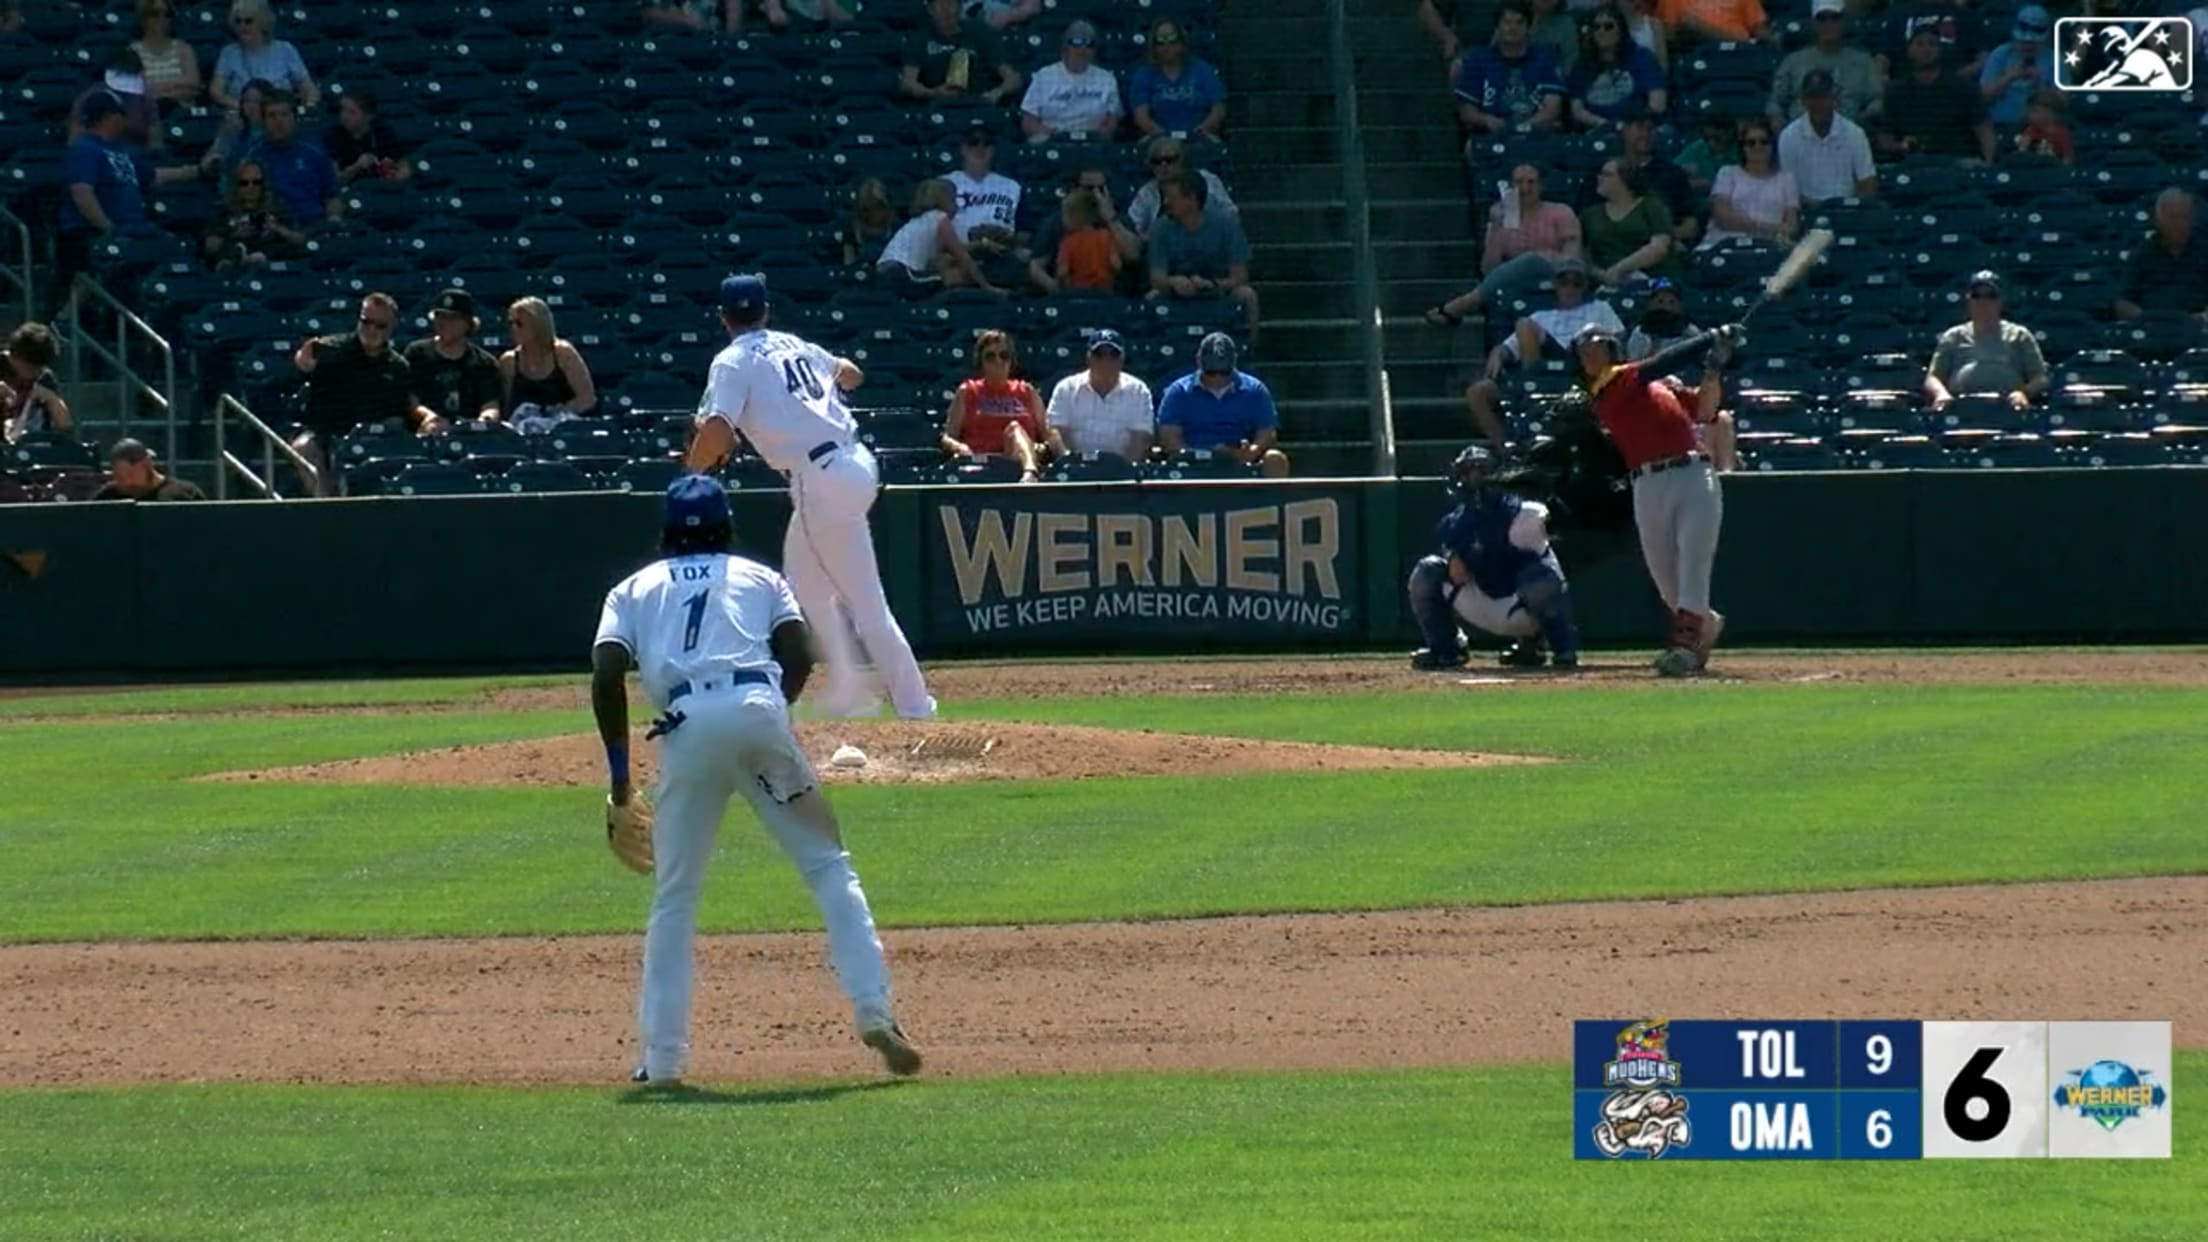 Torkelson's 25th homer